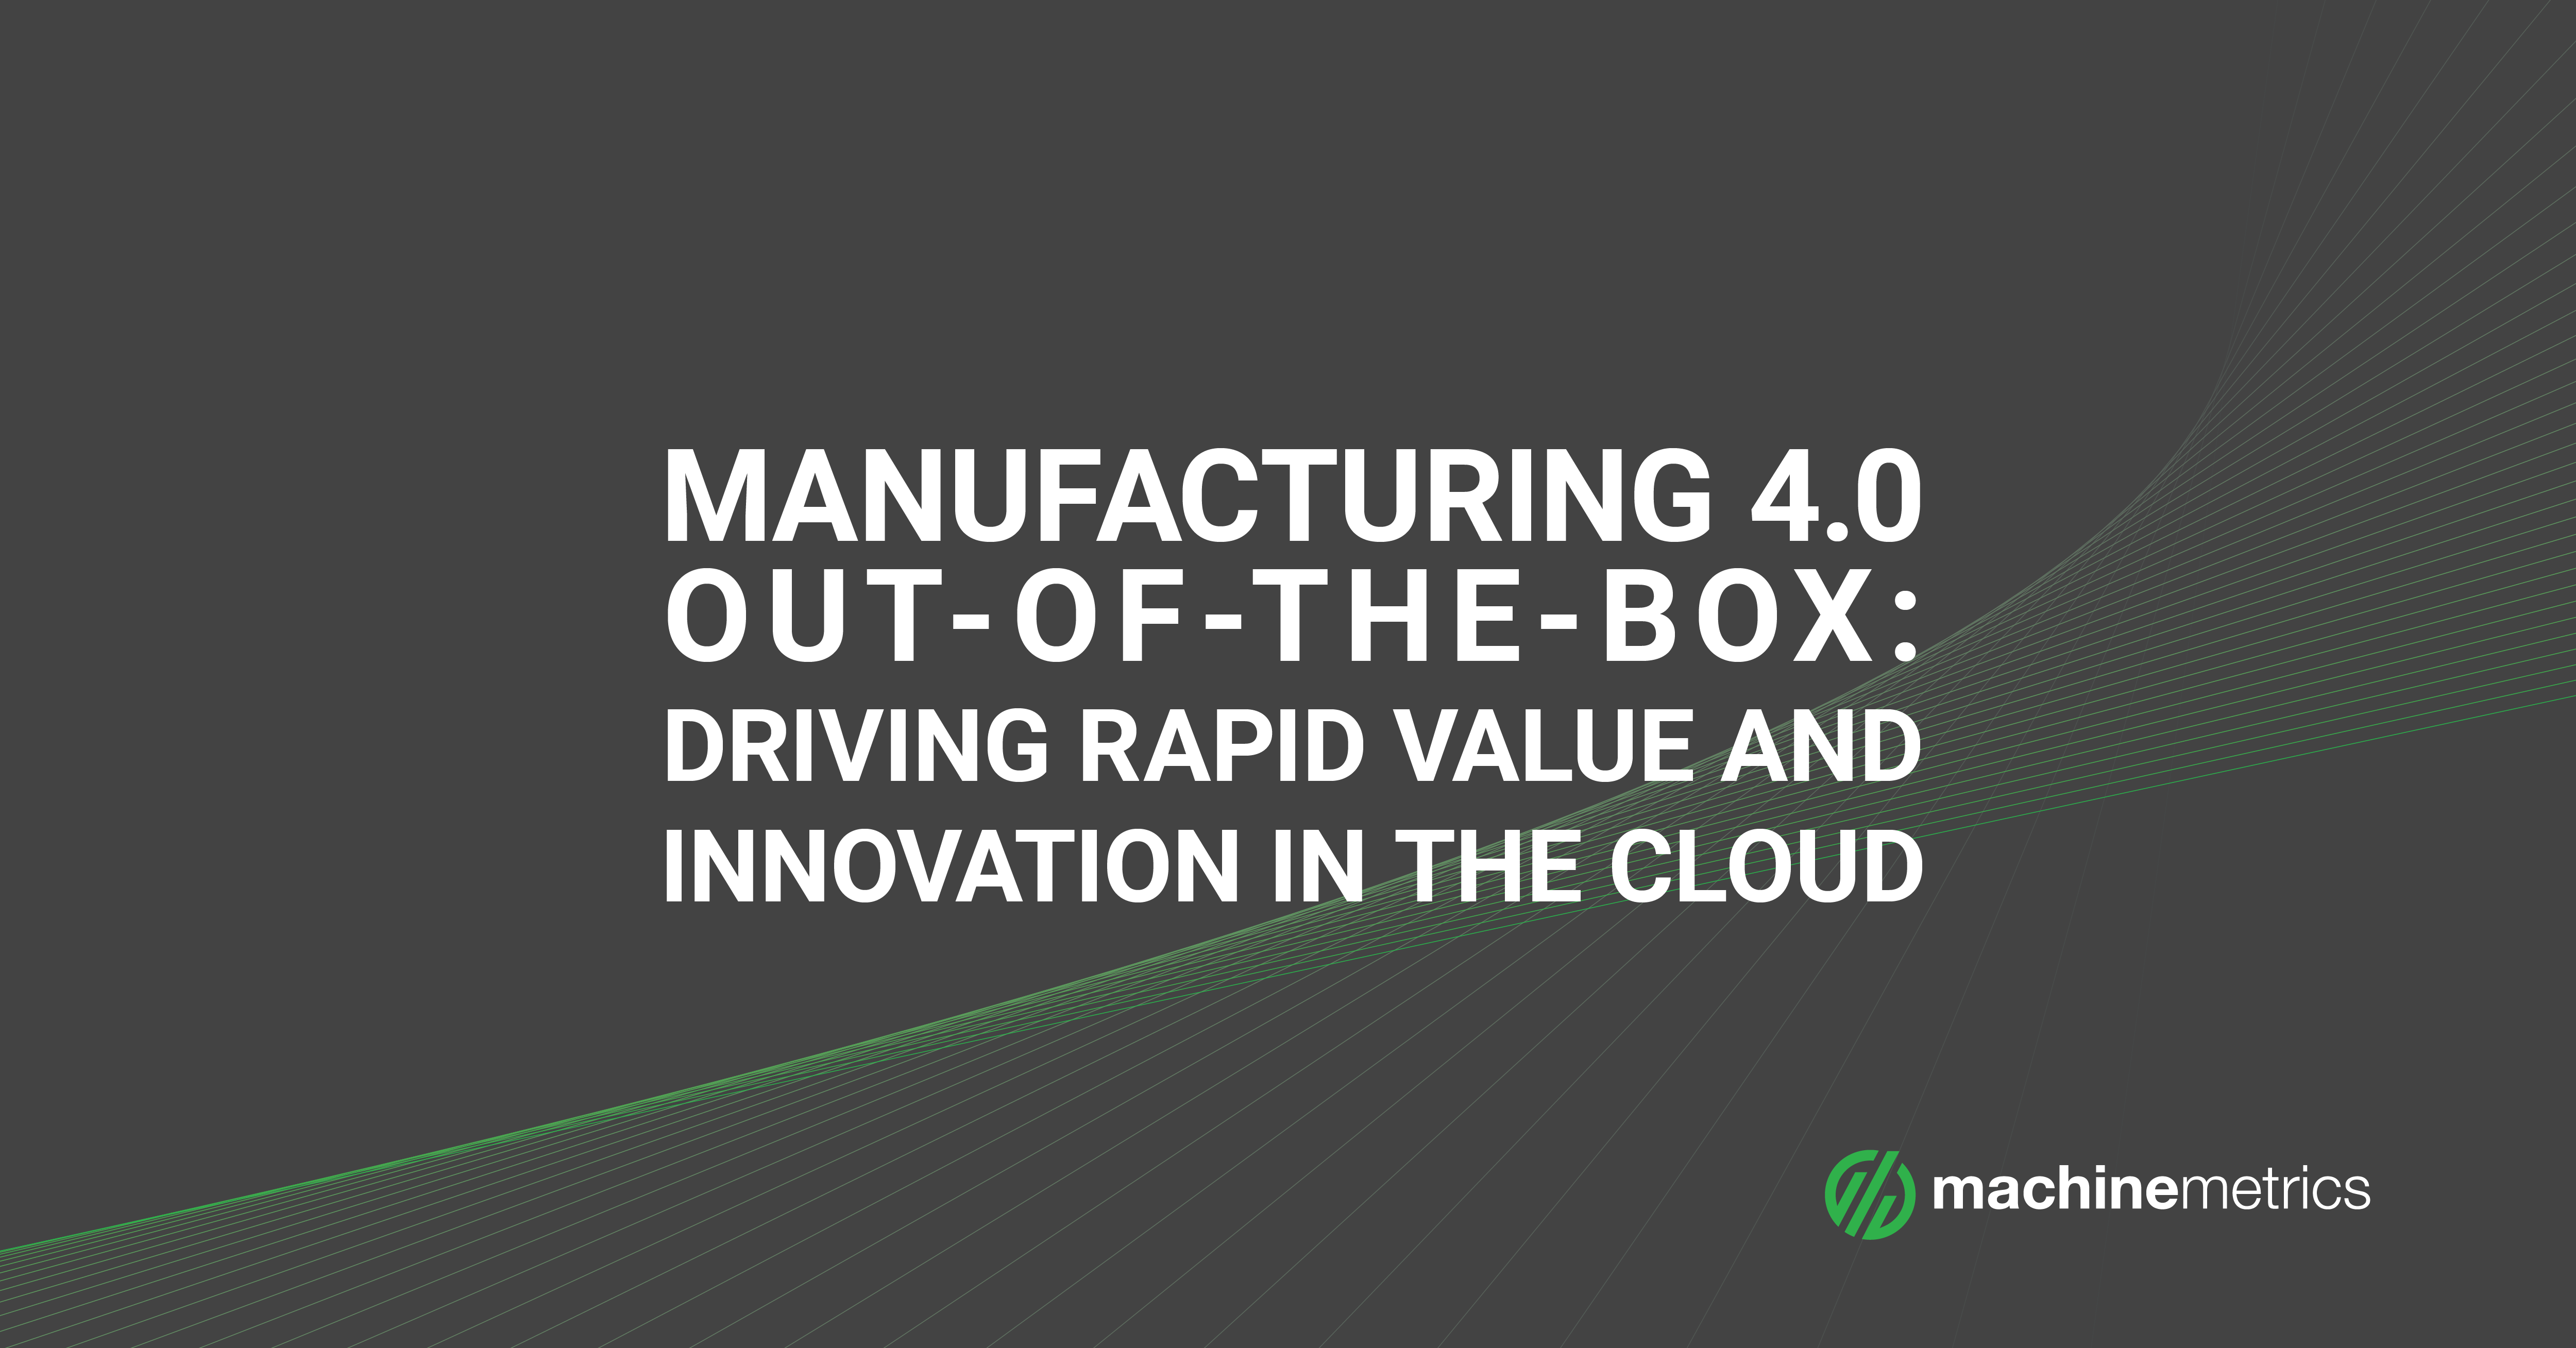 Driving Rapid Value and Innovation in the Cloud: An interview with MM CEO Bill Bither